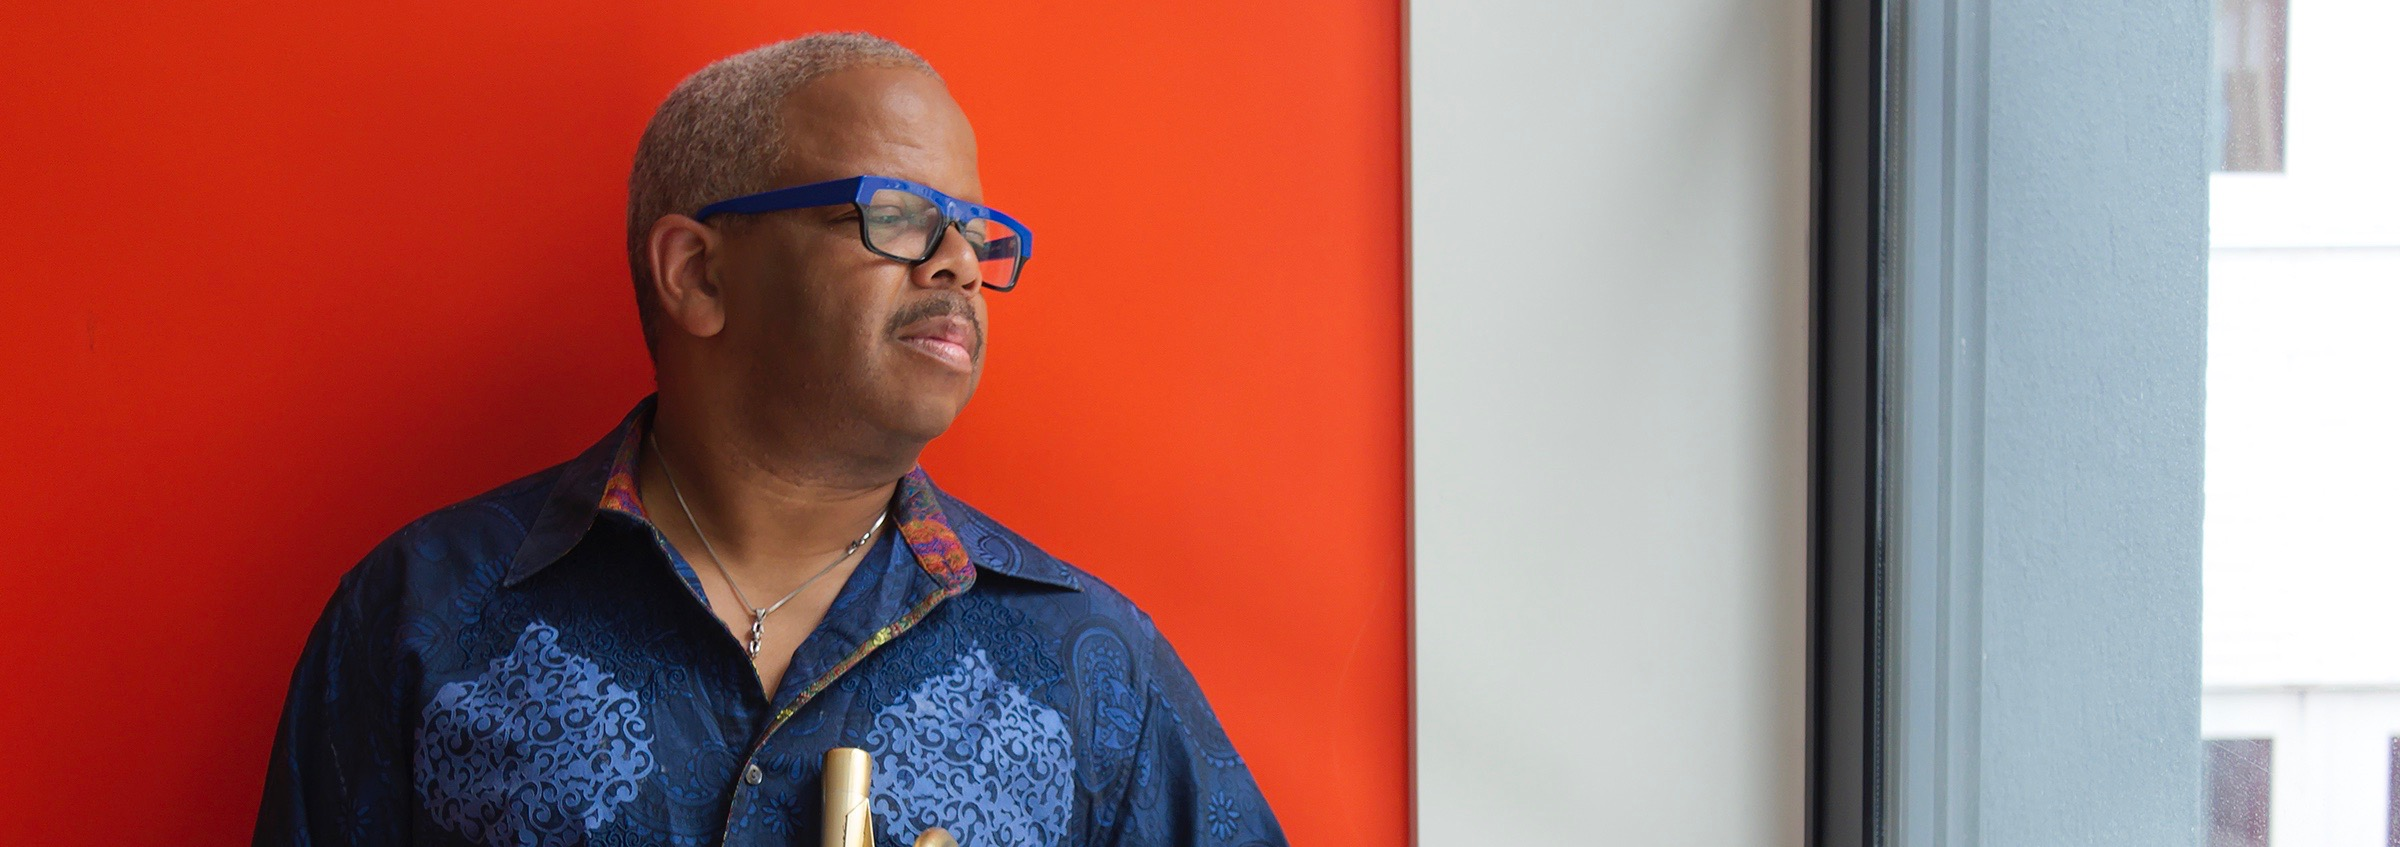 A photo of 2020 Humanist Award Winner, Terence Blanchard